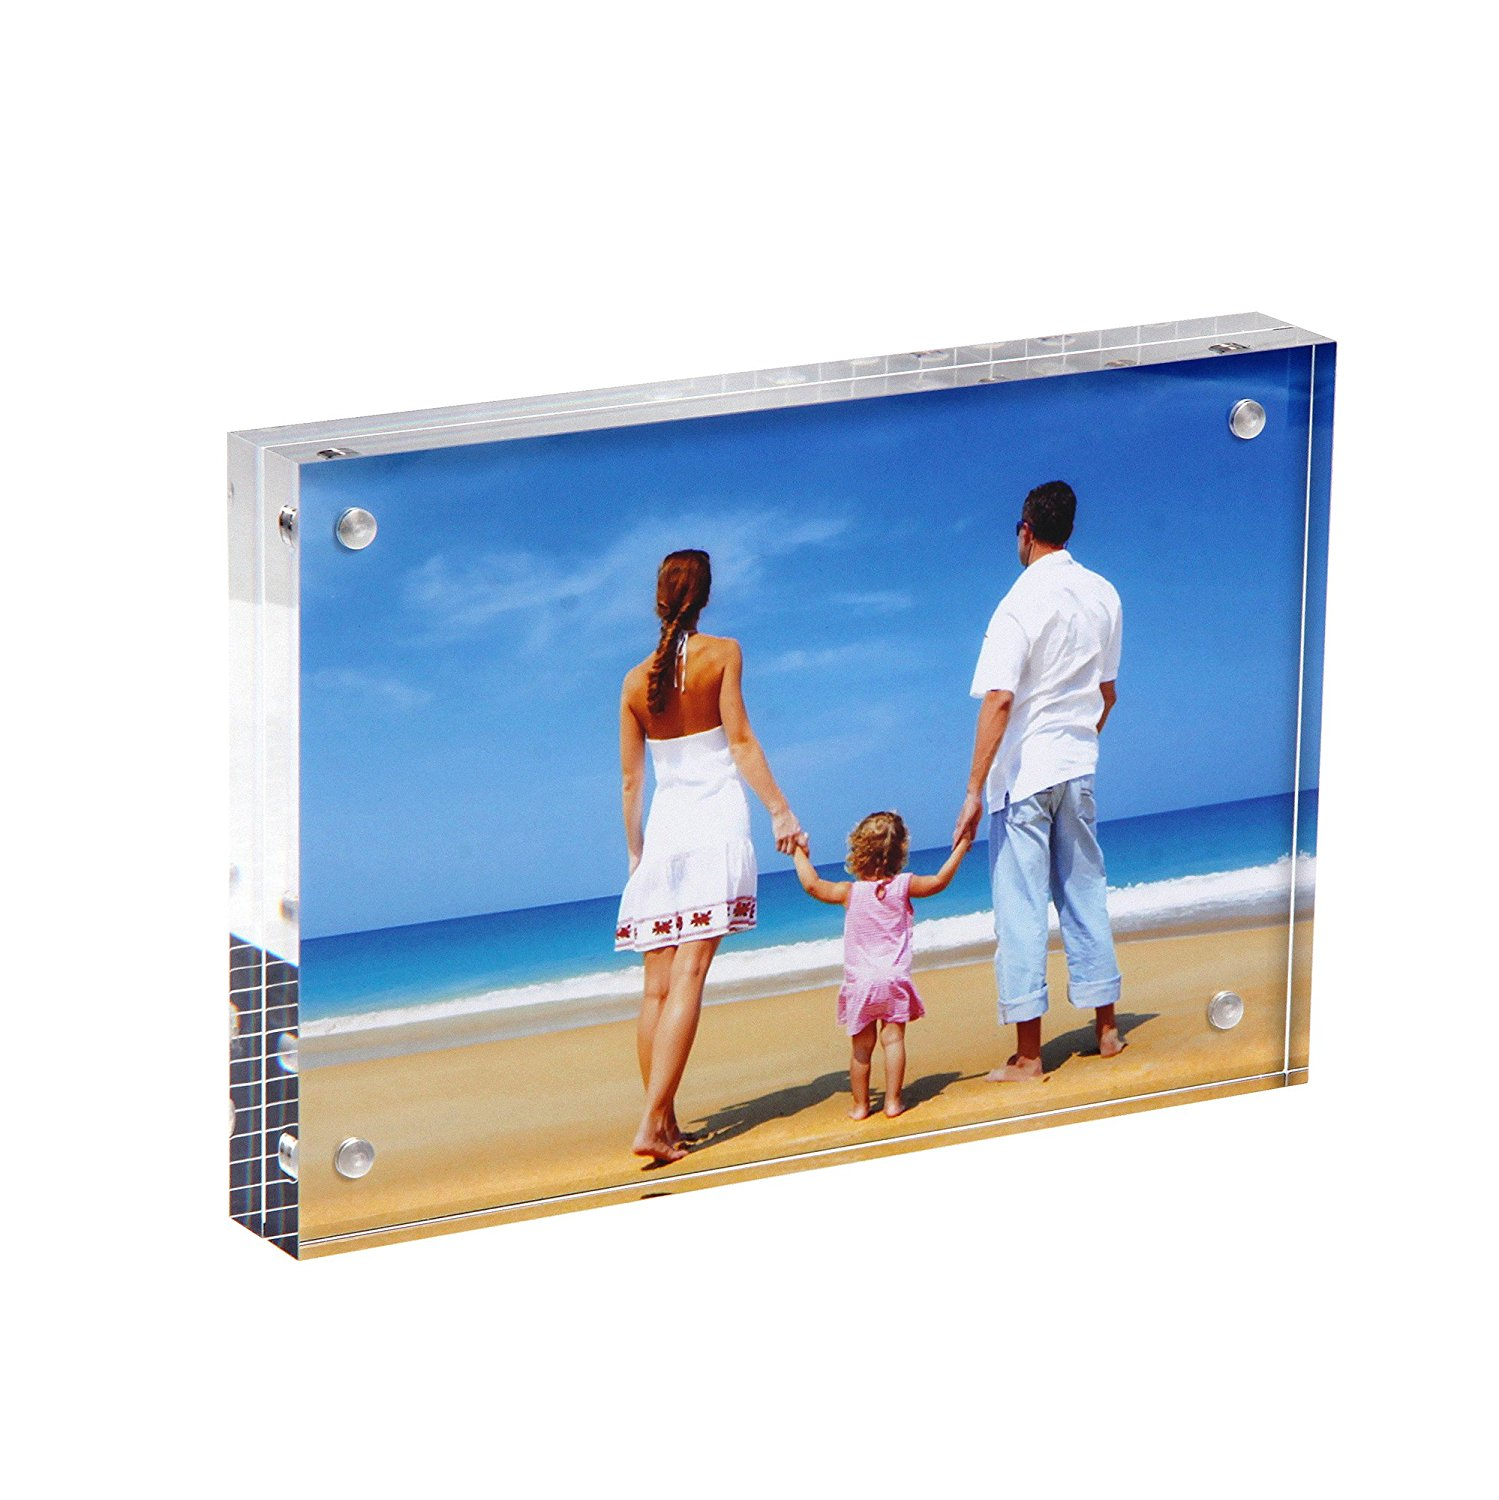 """Niubee Clear Acrylic Photo Frame 4x6"""" Gift Box Package, Double Sided Magnetic Acrylic Block Picture Frames, Frameless Desktop Postcard Display"""